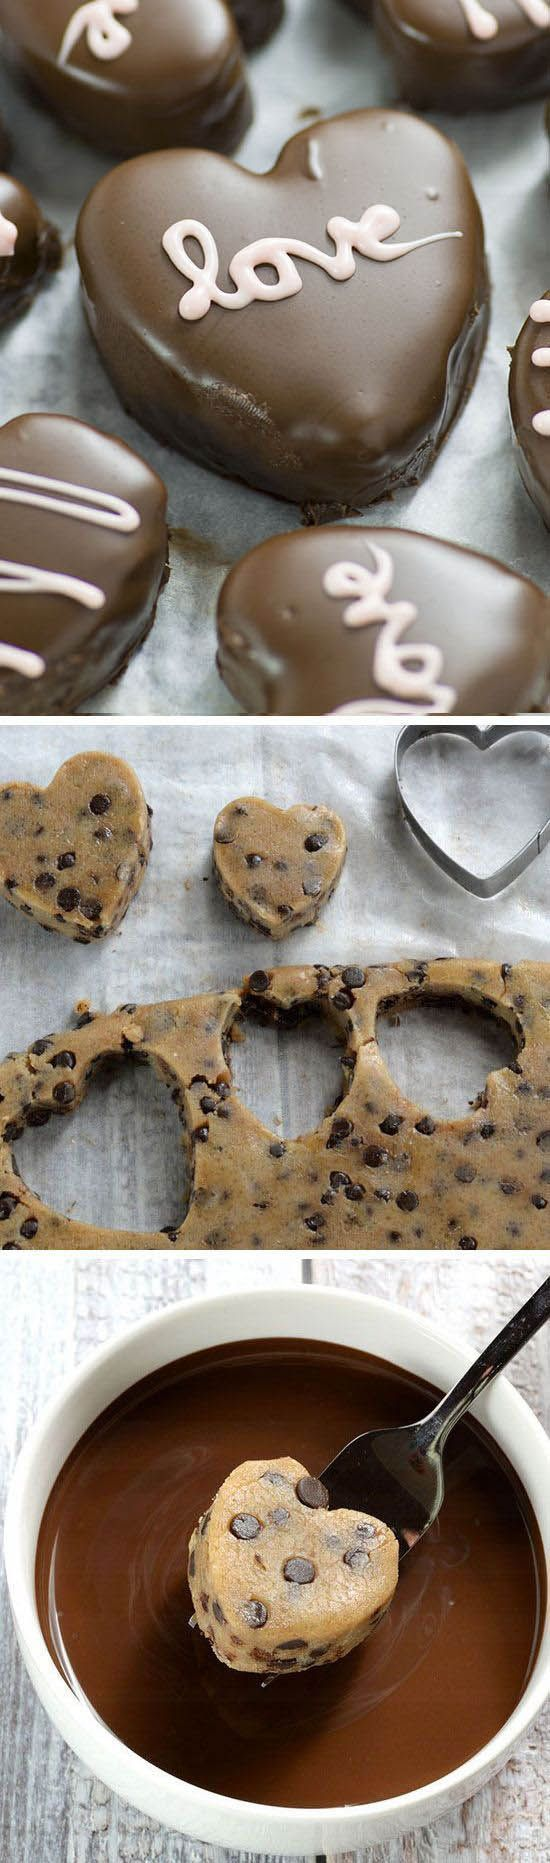 Recipe for the Perfect Valentines day treat for your honey - Chocolate Chip Cookie Dough Valentine's Hearts are irresistible cupid inspired dessert.